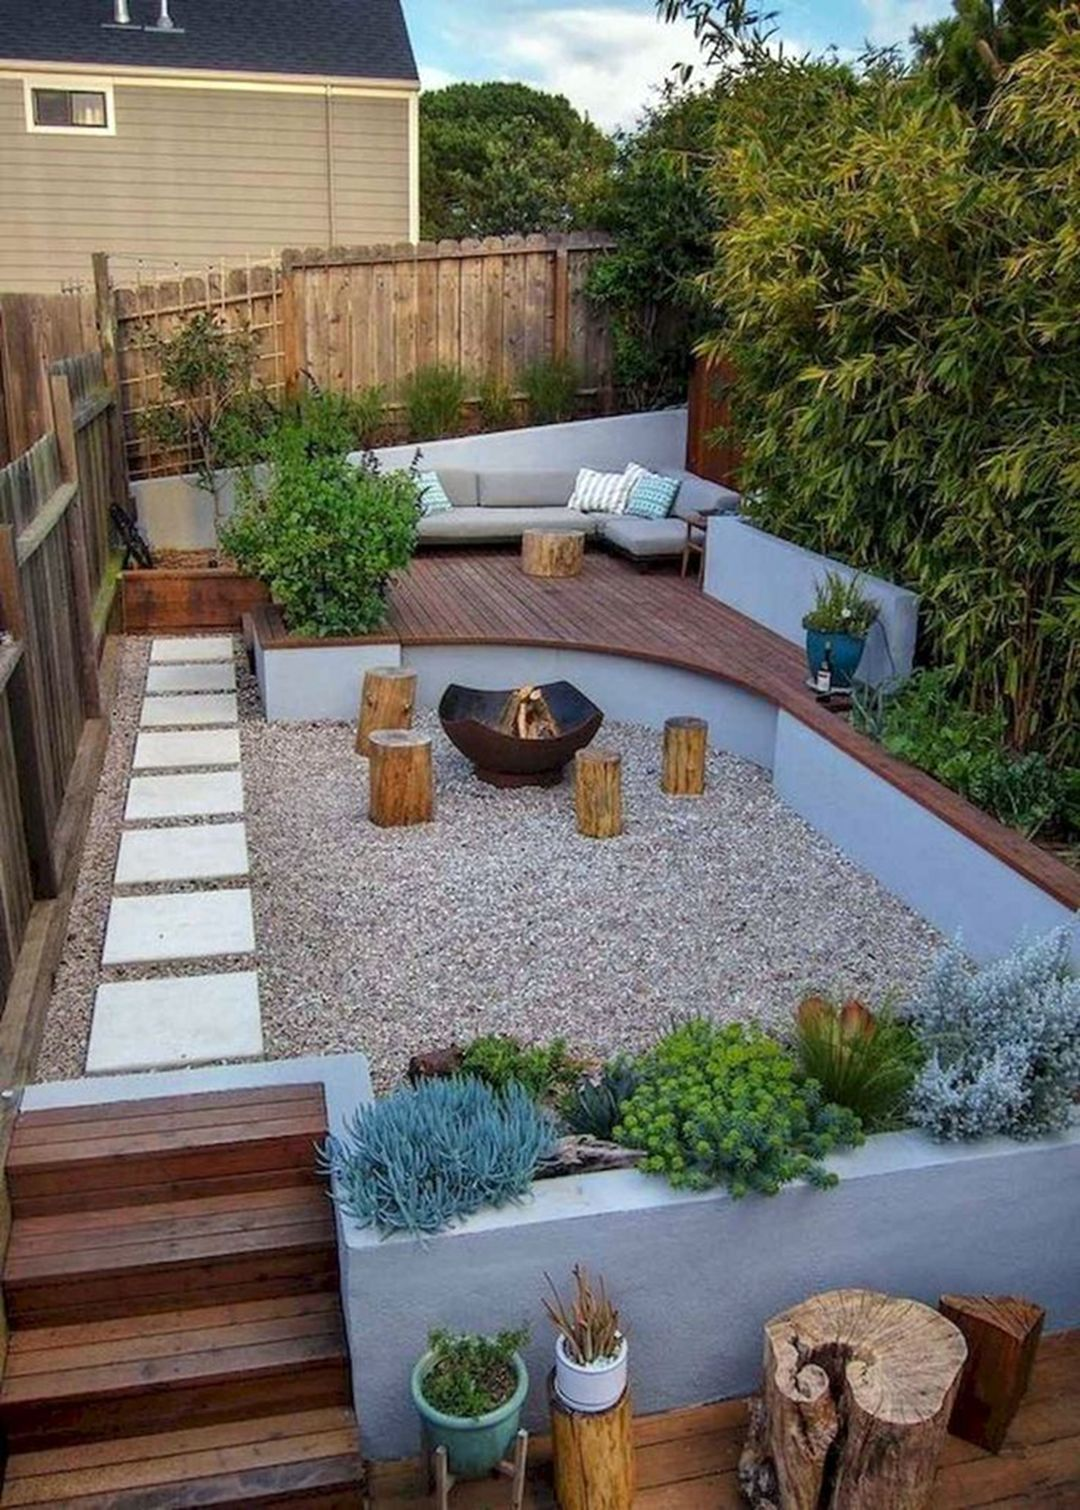 13 Amazing Multi Level Garden Ideas You Need To Try To Your Yard In 2020 Small Backyard Landscaping Small Backyard Gardens Small Backyard